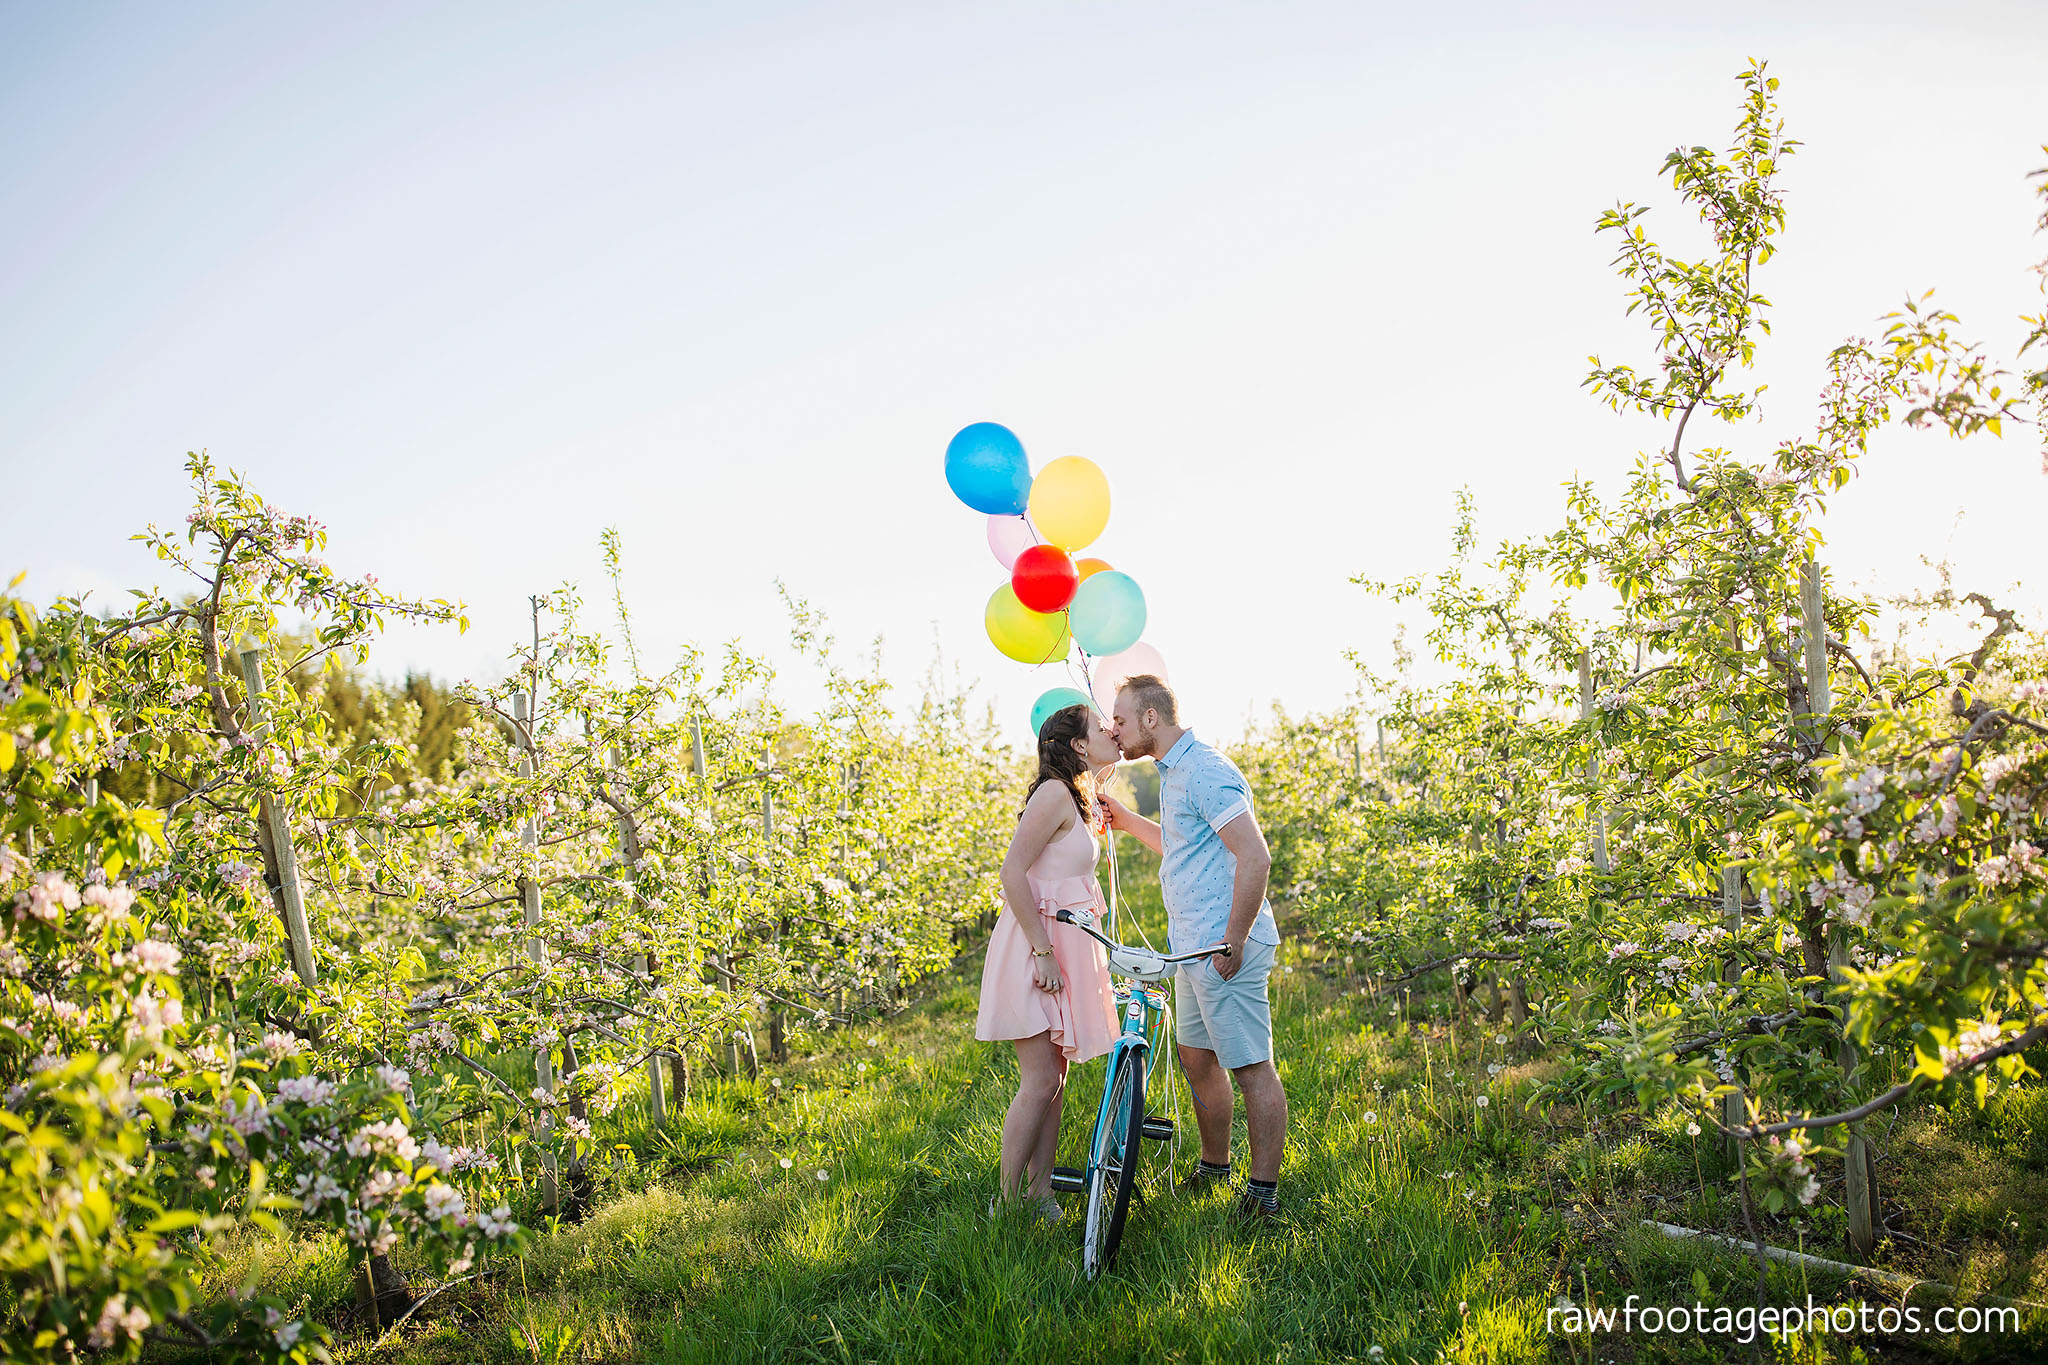 london_ontario_wedding_photographer-raw_footage_photography-engagement_session-airport_session-airplane-balloons-apple_orchard-spring_blooms-apple_blossoms022.jpg